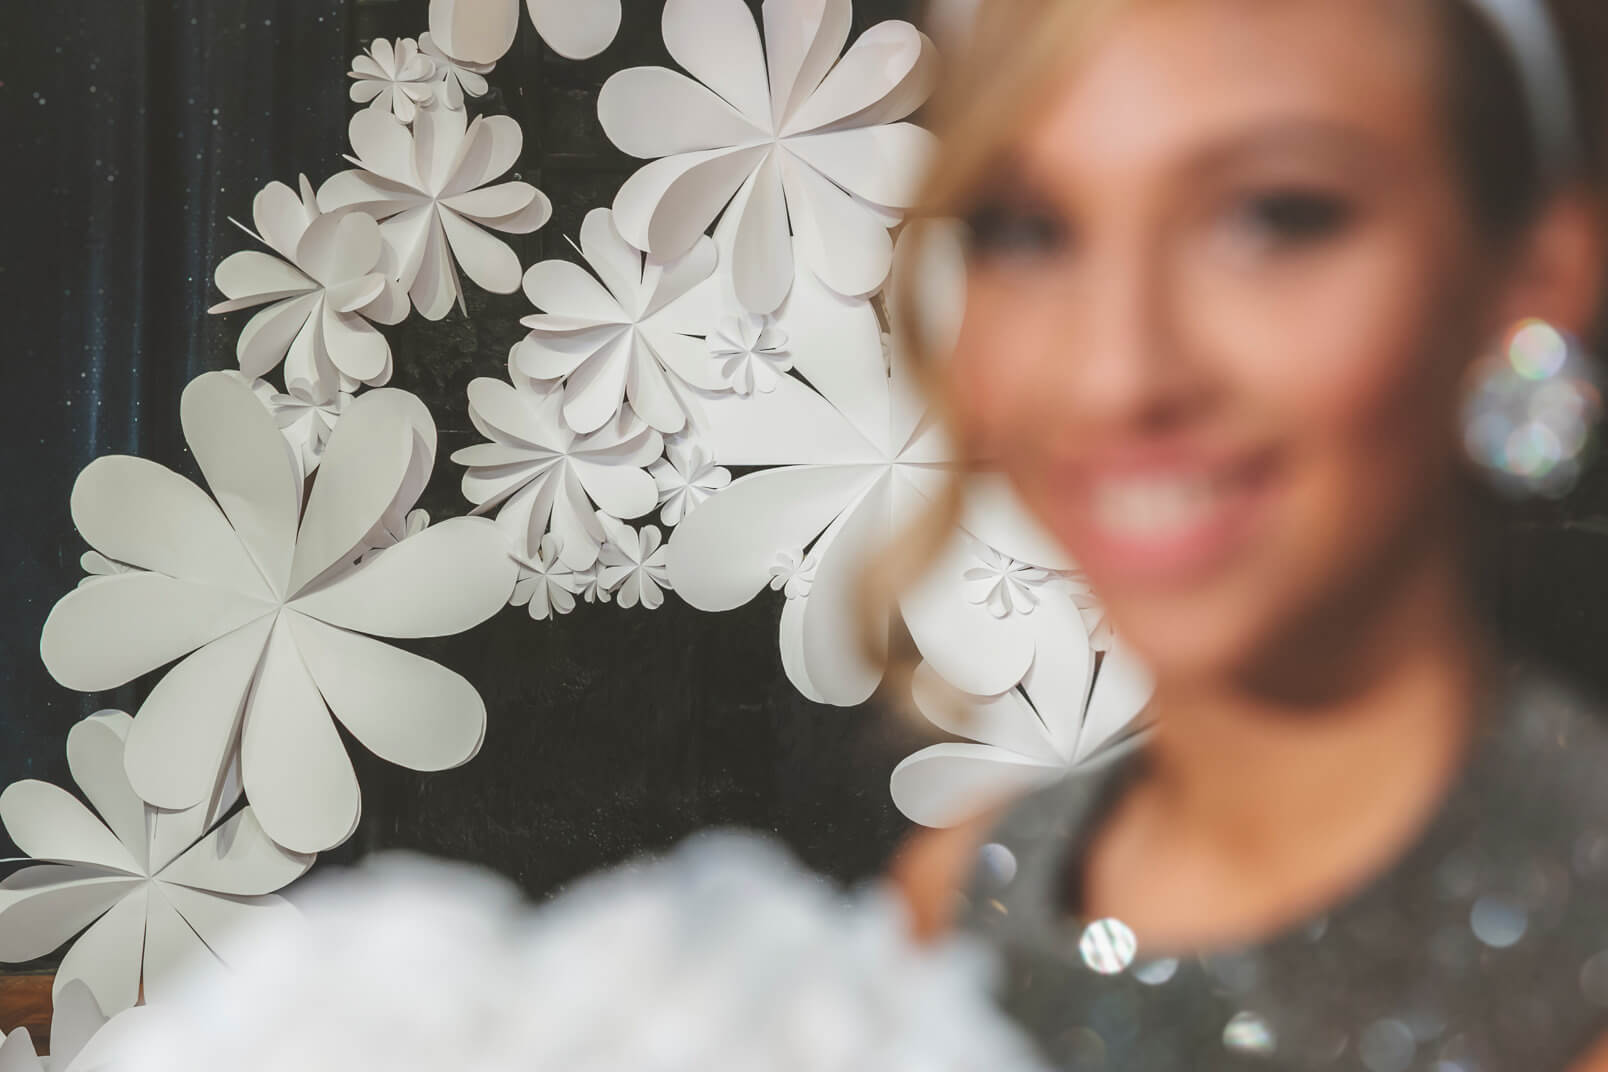 60s mood paper flowers and wedding decorations by Chicapui at the wedding ceremony venue.